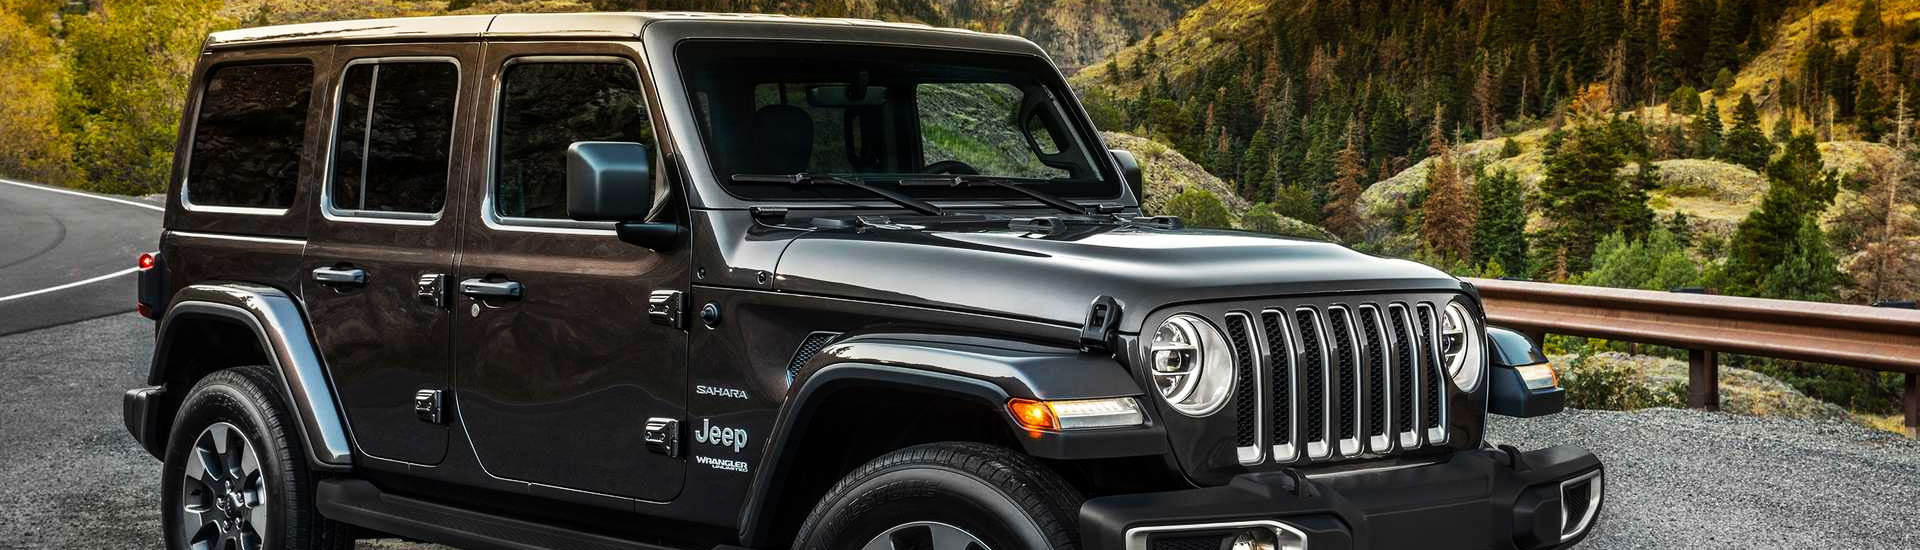 Jeep Paint Protection Kits